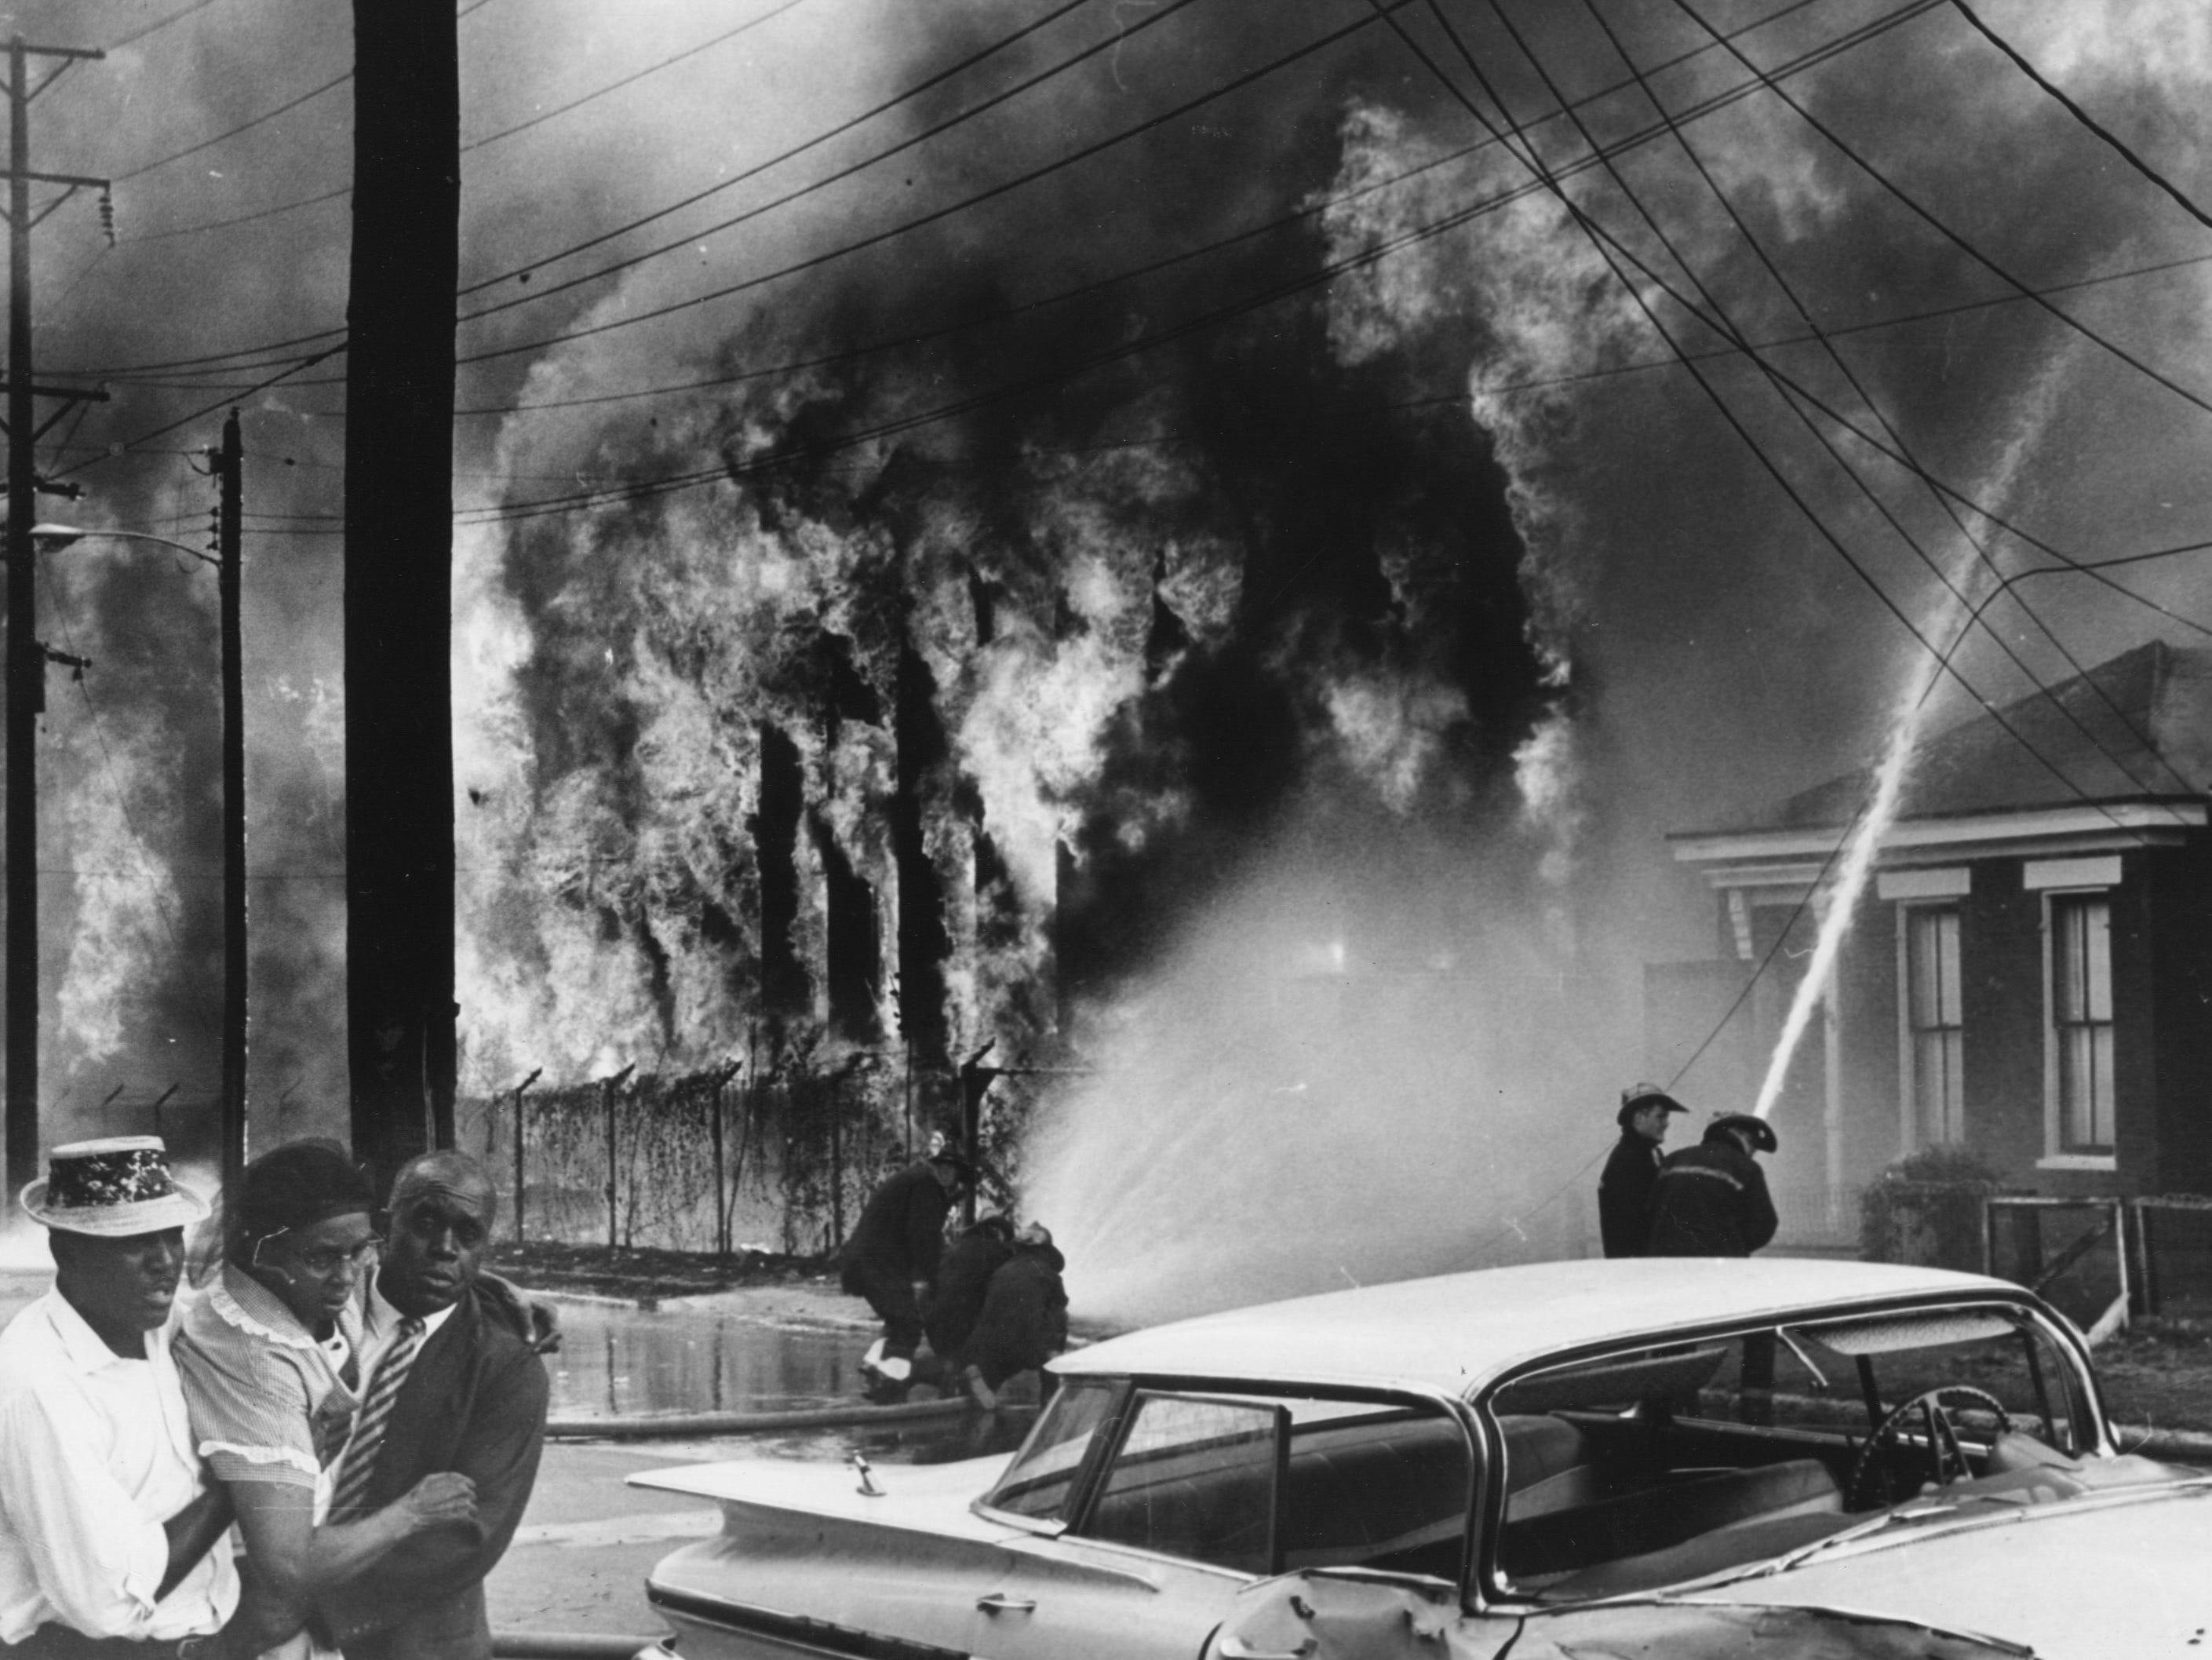 A four-alarm fire at the old Woolen Mills also damaged 12 nearby houses. 